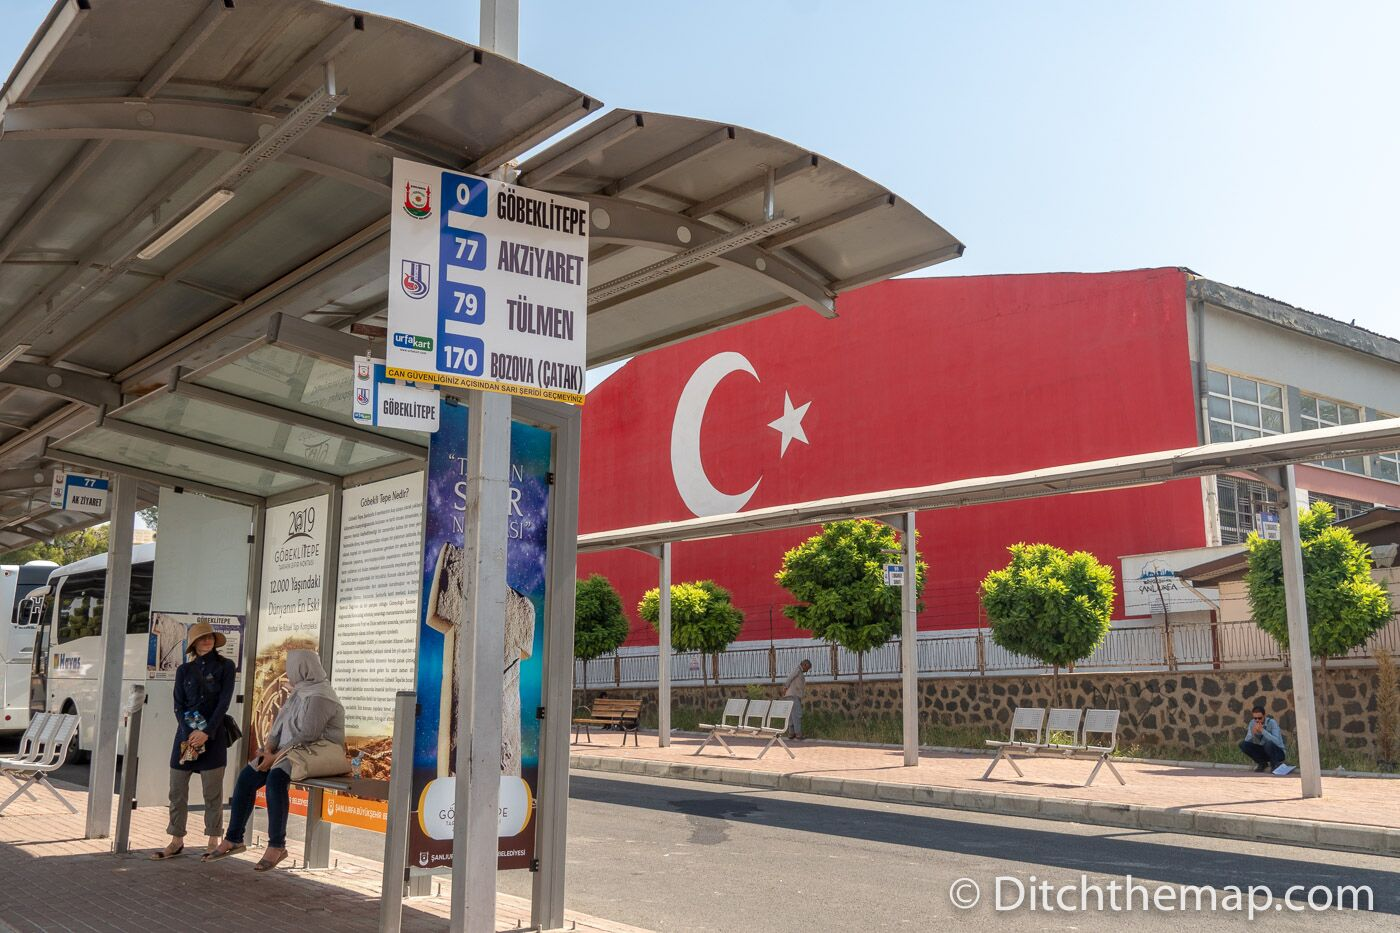 Waiting for the bus in Urfa to go to Göbekli Tepe